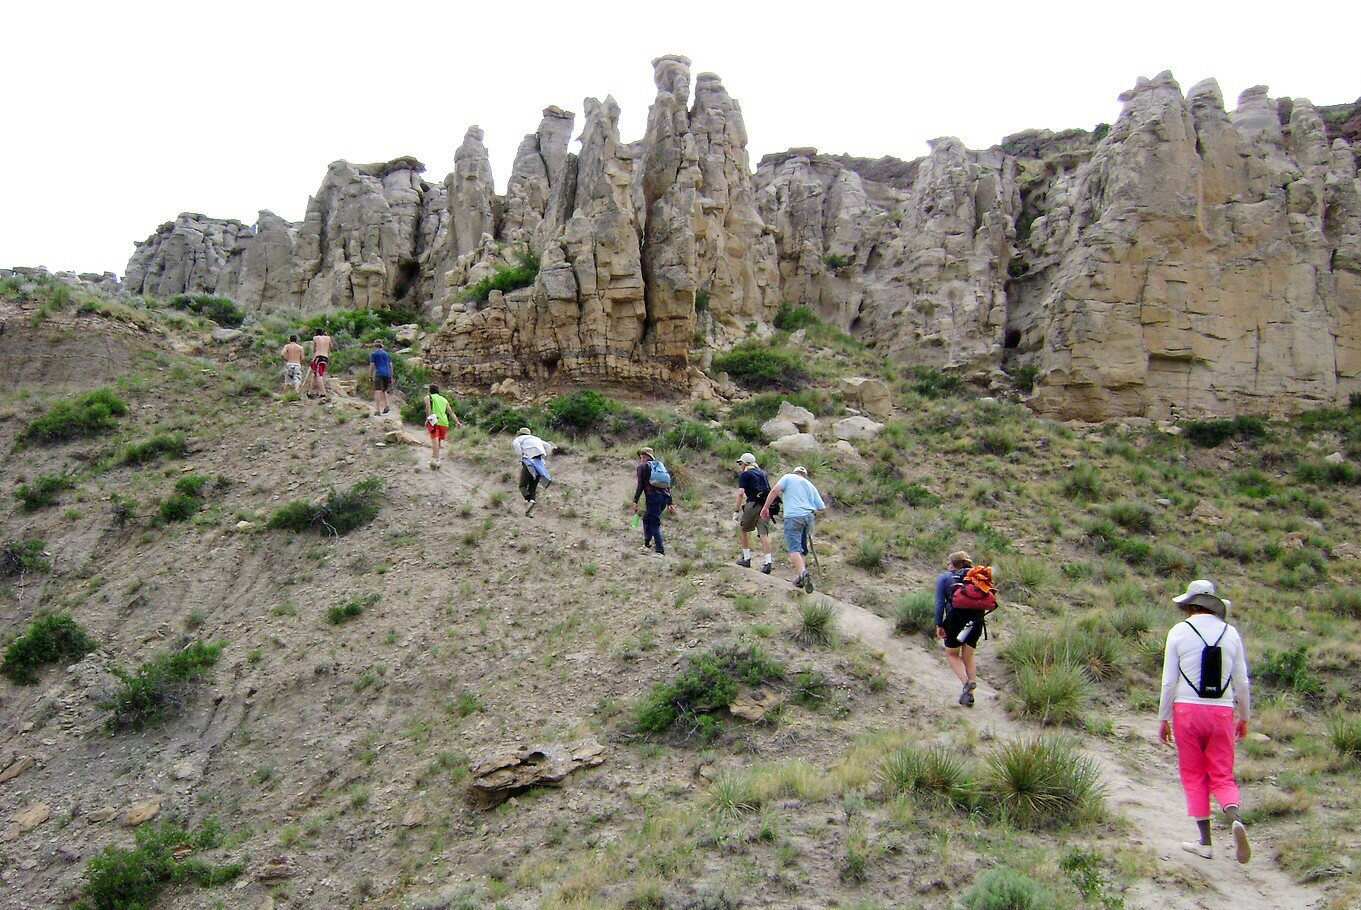 A group hikes single file past towering rock formations to see the Hole-in-the-Wall, one of the Missouri's most iconic rock formations.